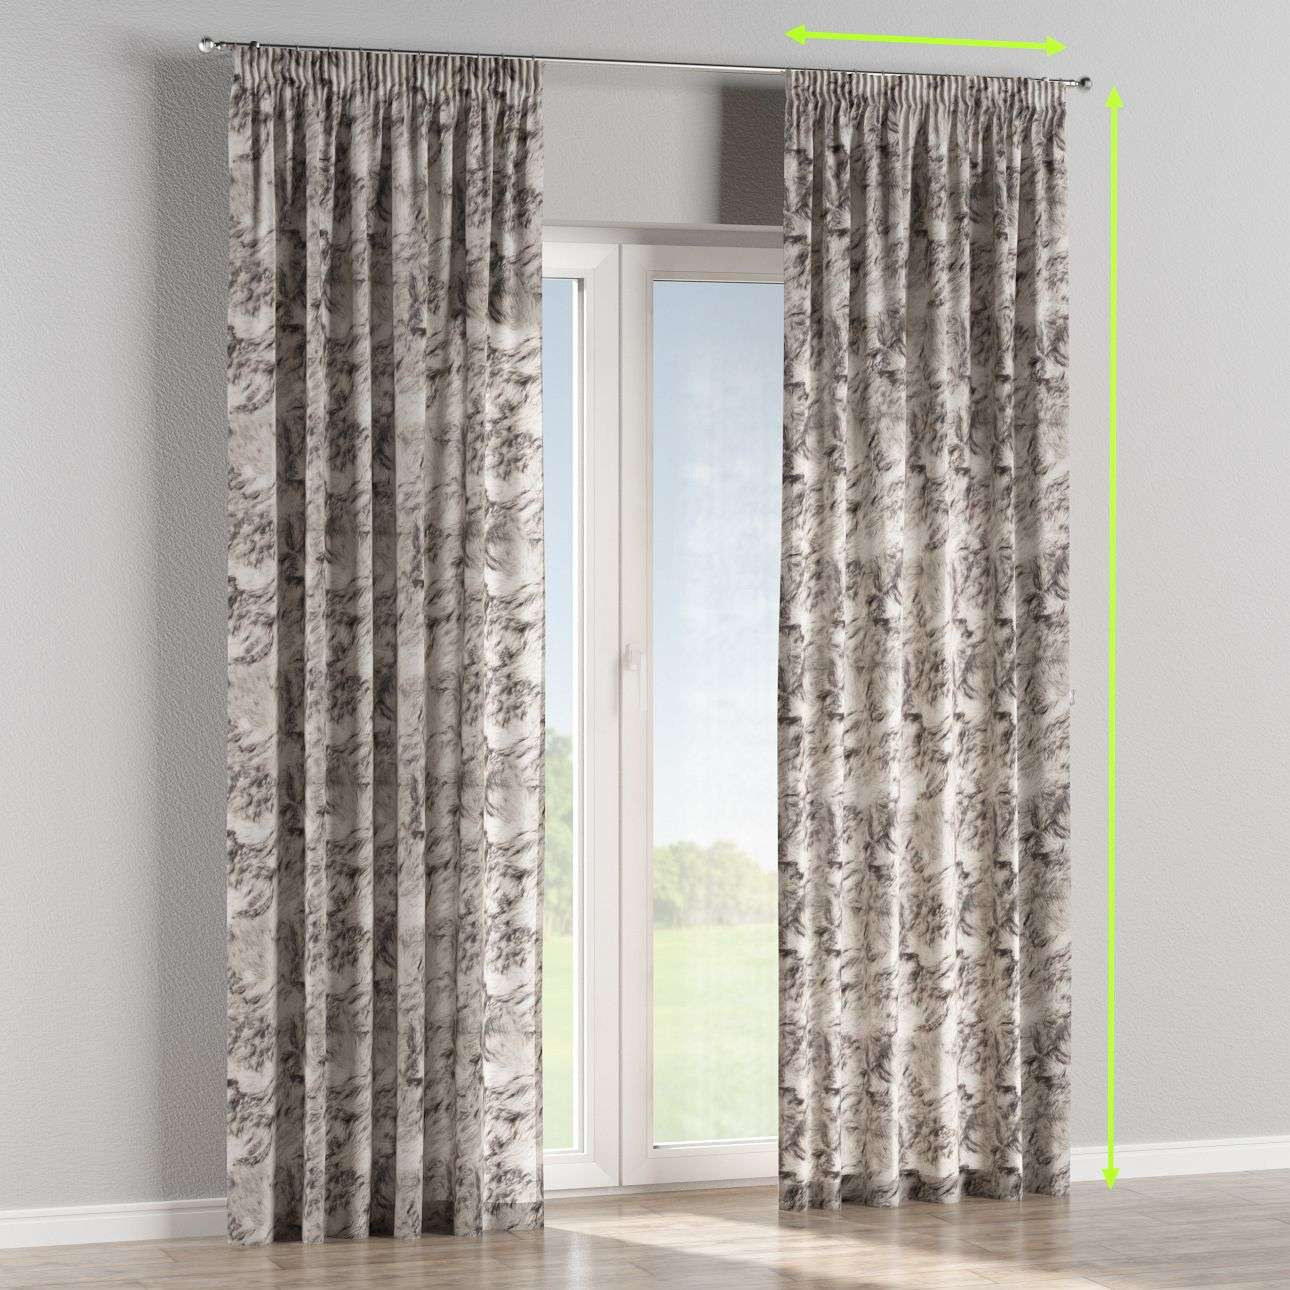 Pencil pleat curtains in collection Norge, fabric: 140-82